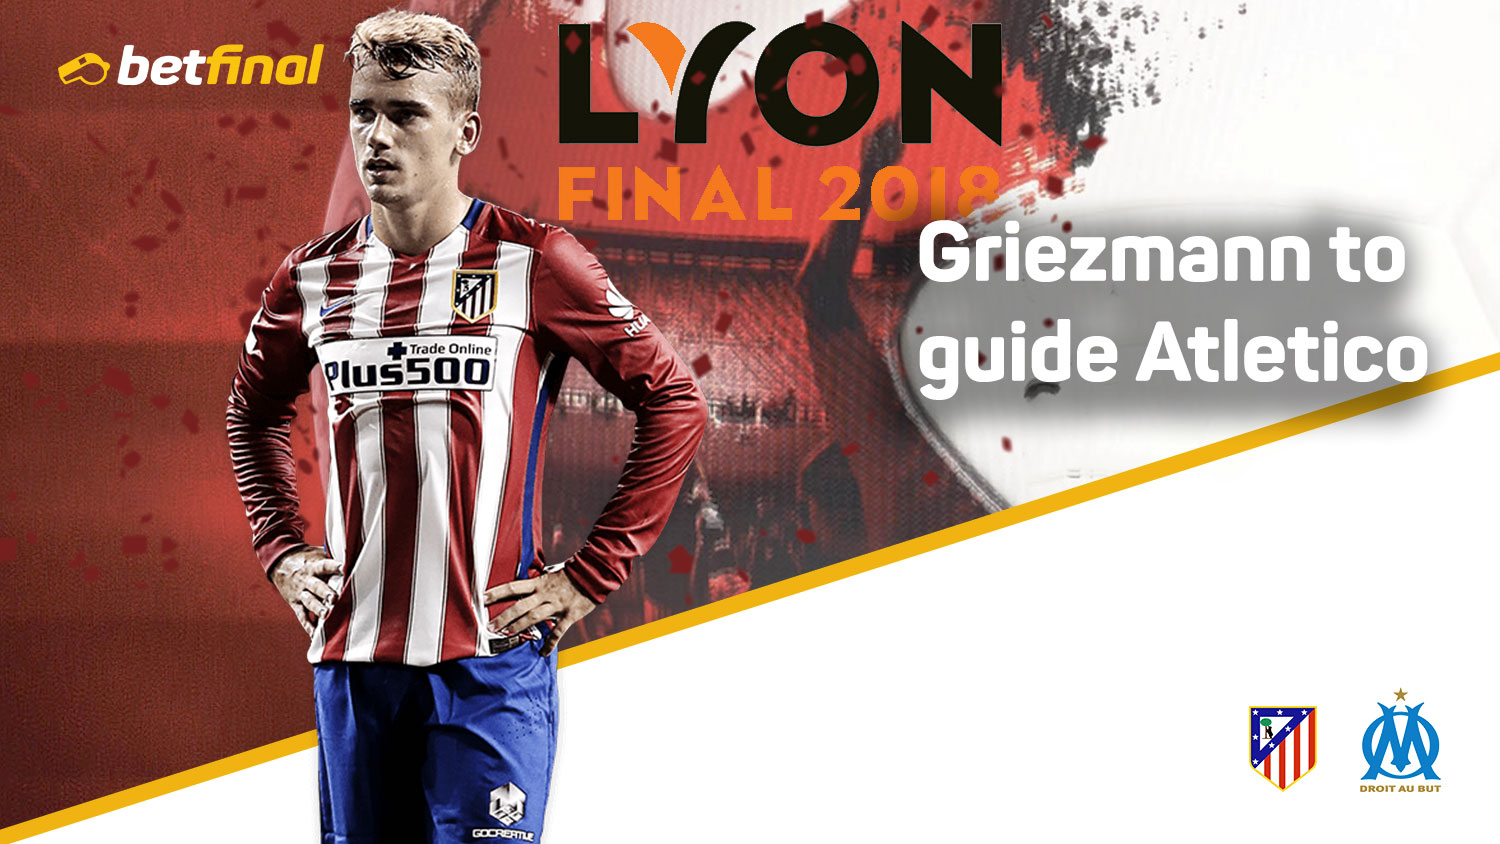 Griezmann's Atletico goodbye? – Marseille Vs Atletico Madrid, Parc Olympique Lyonnais, 8.45pm Wednesday, May 16th.